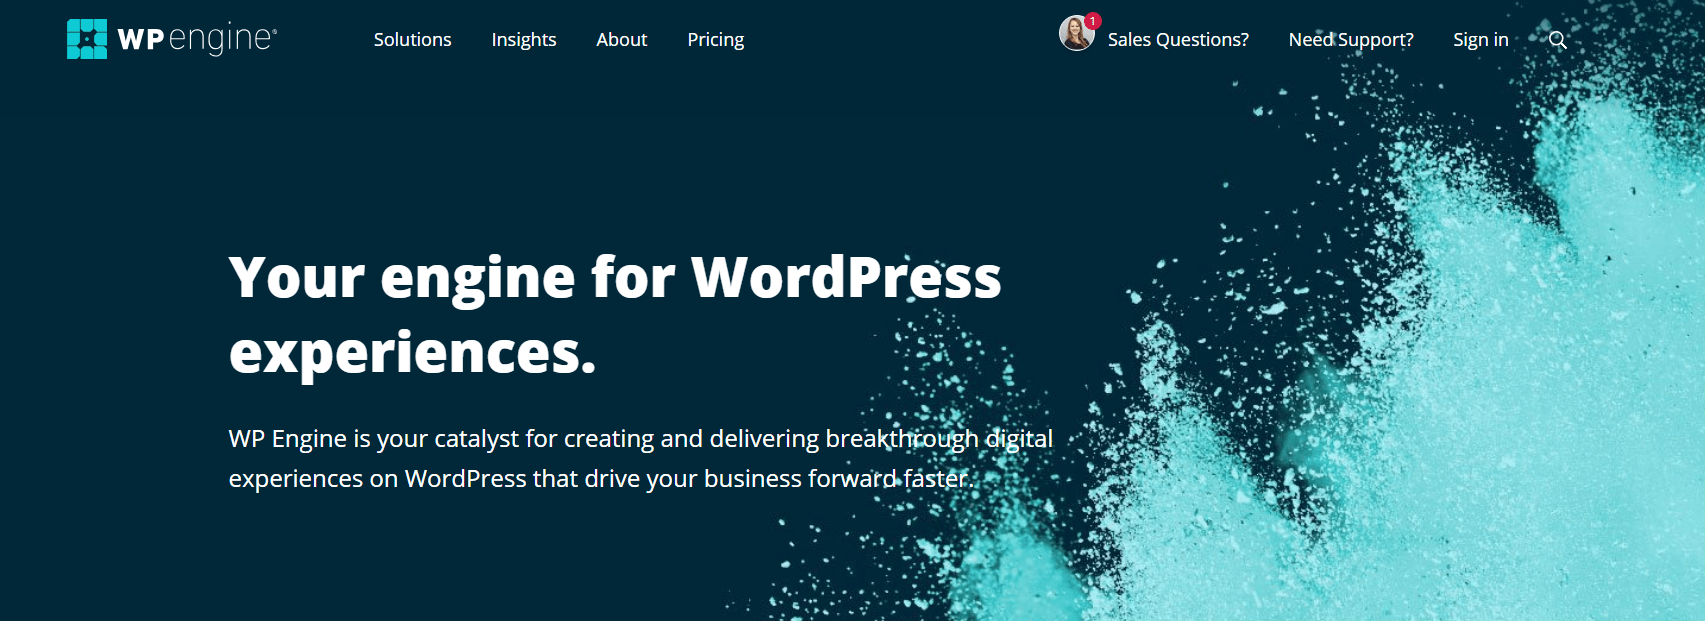 Buy WordPress Hosting WP Engine  Deals Cheap